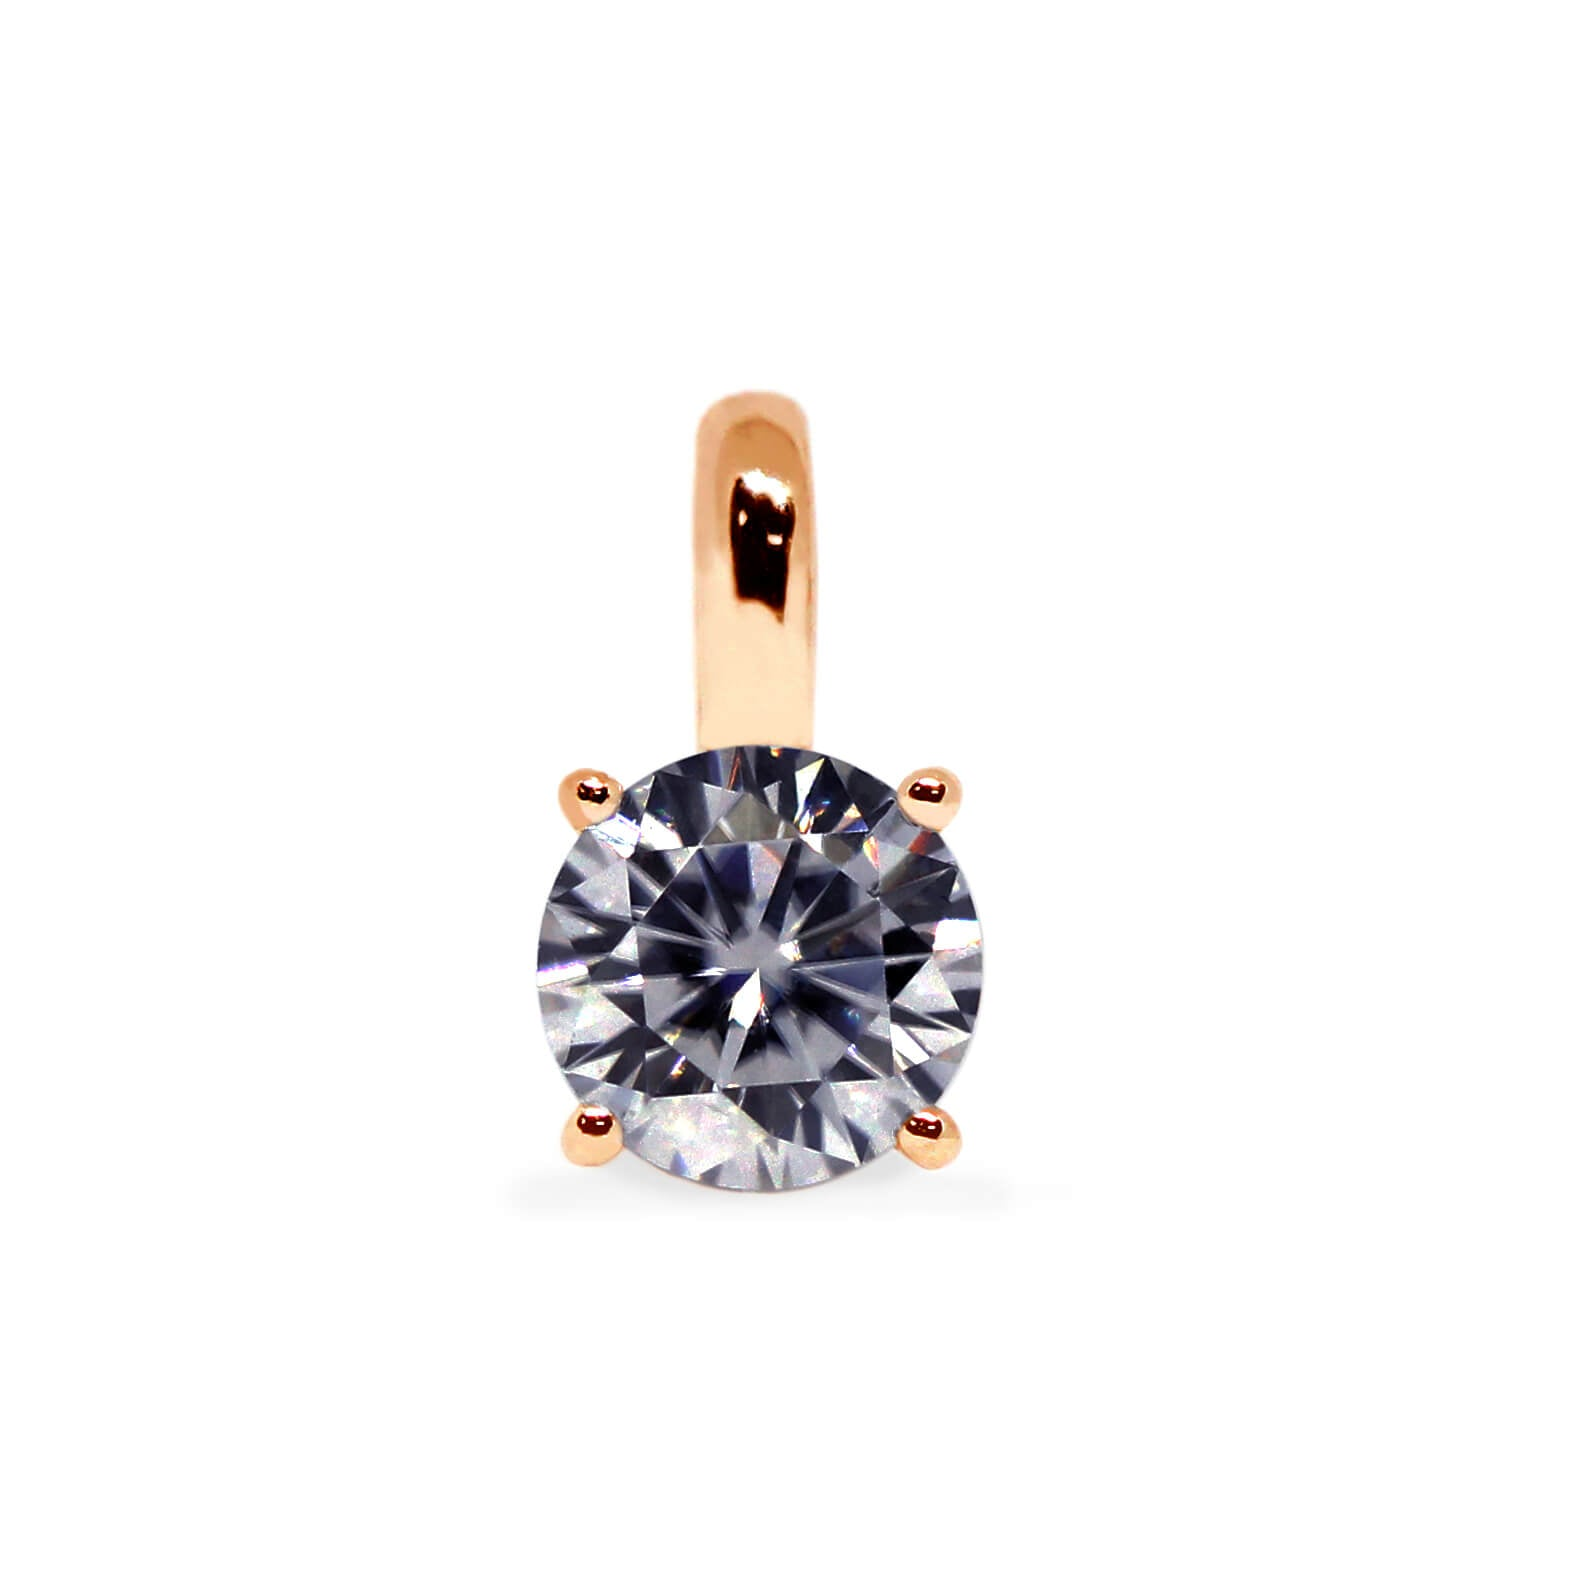 Grey Moissanite Round Solitaire 18K Gold Pendant - Lecaine Gems Moissanite